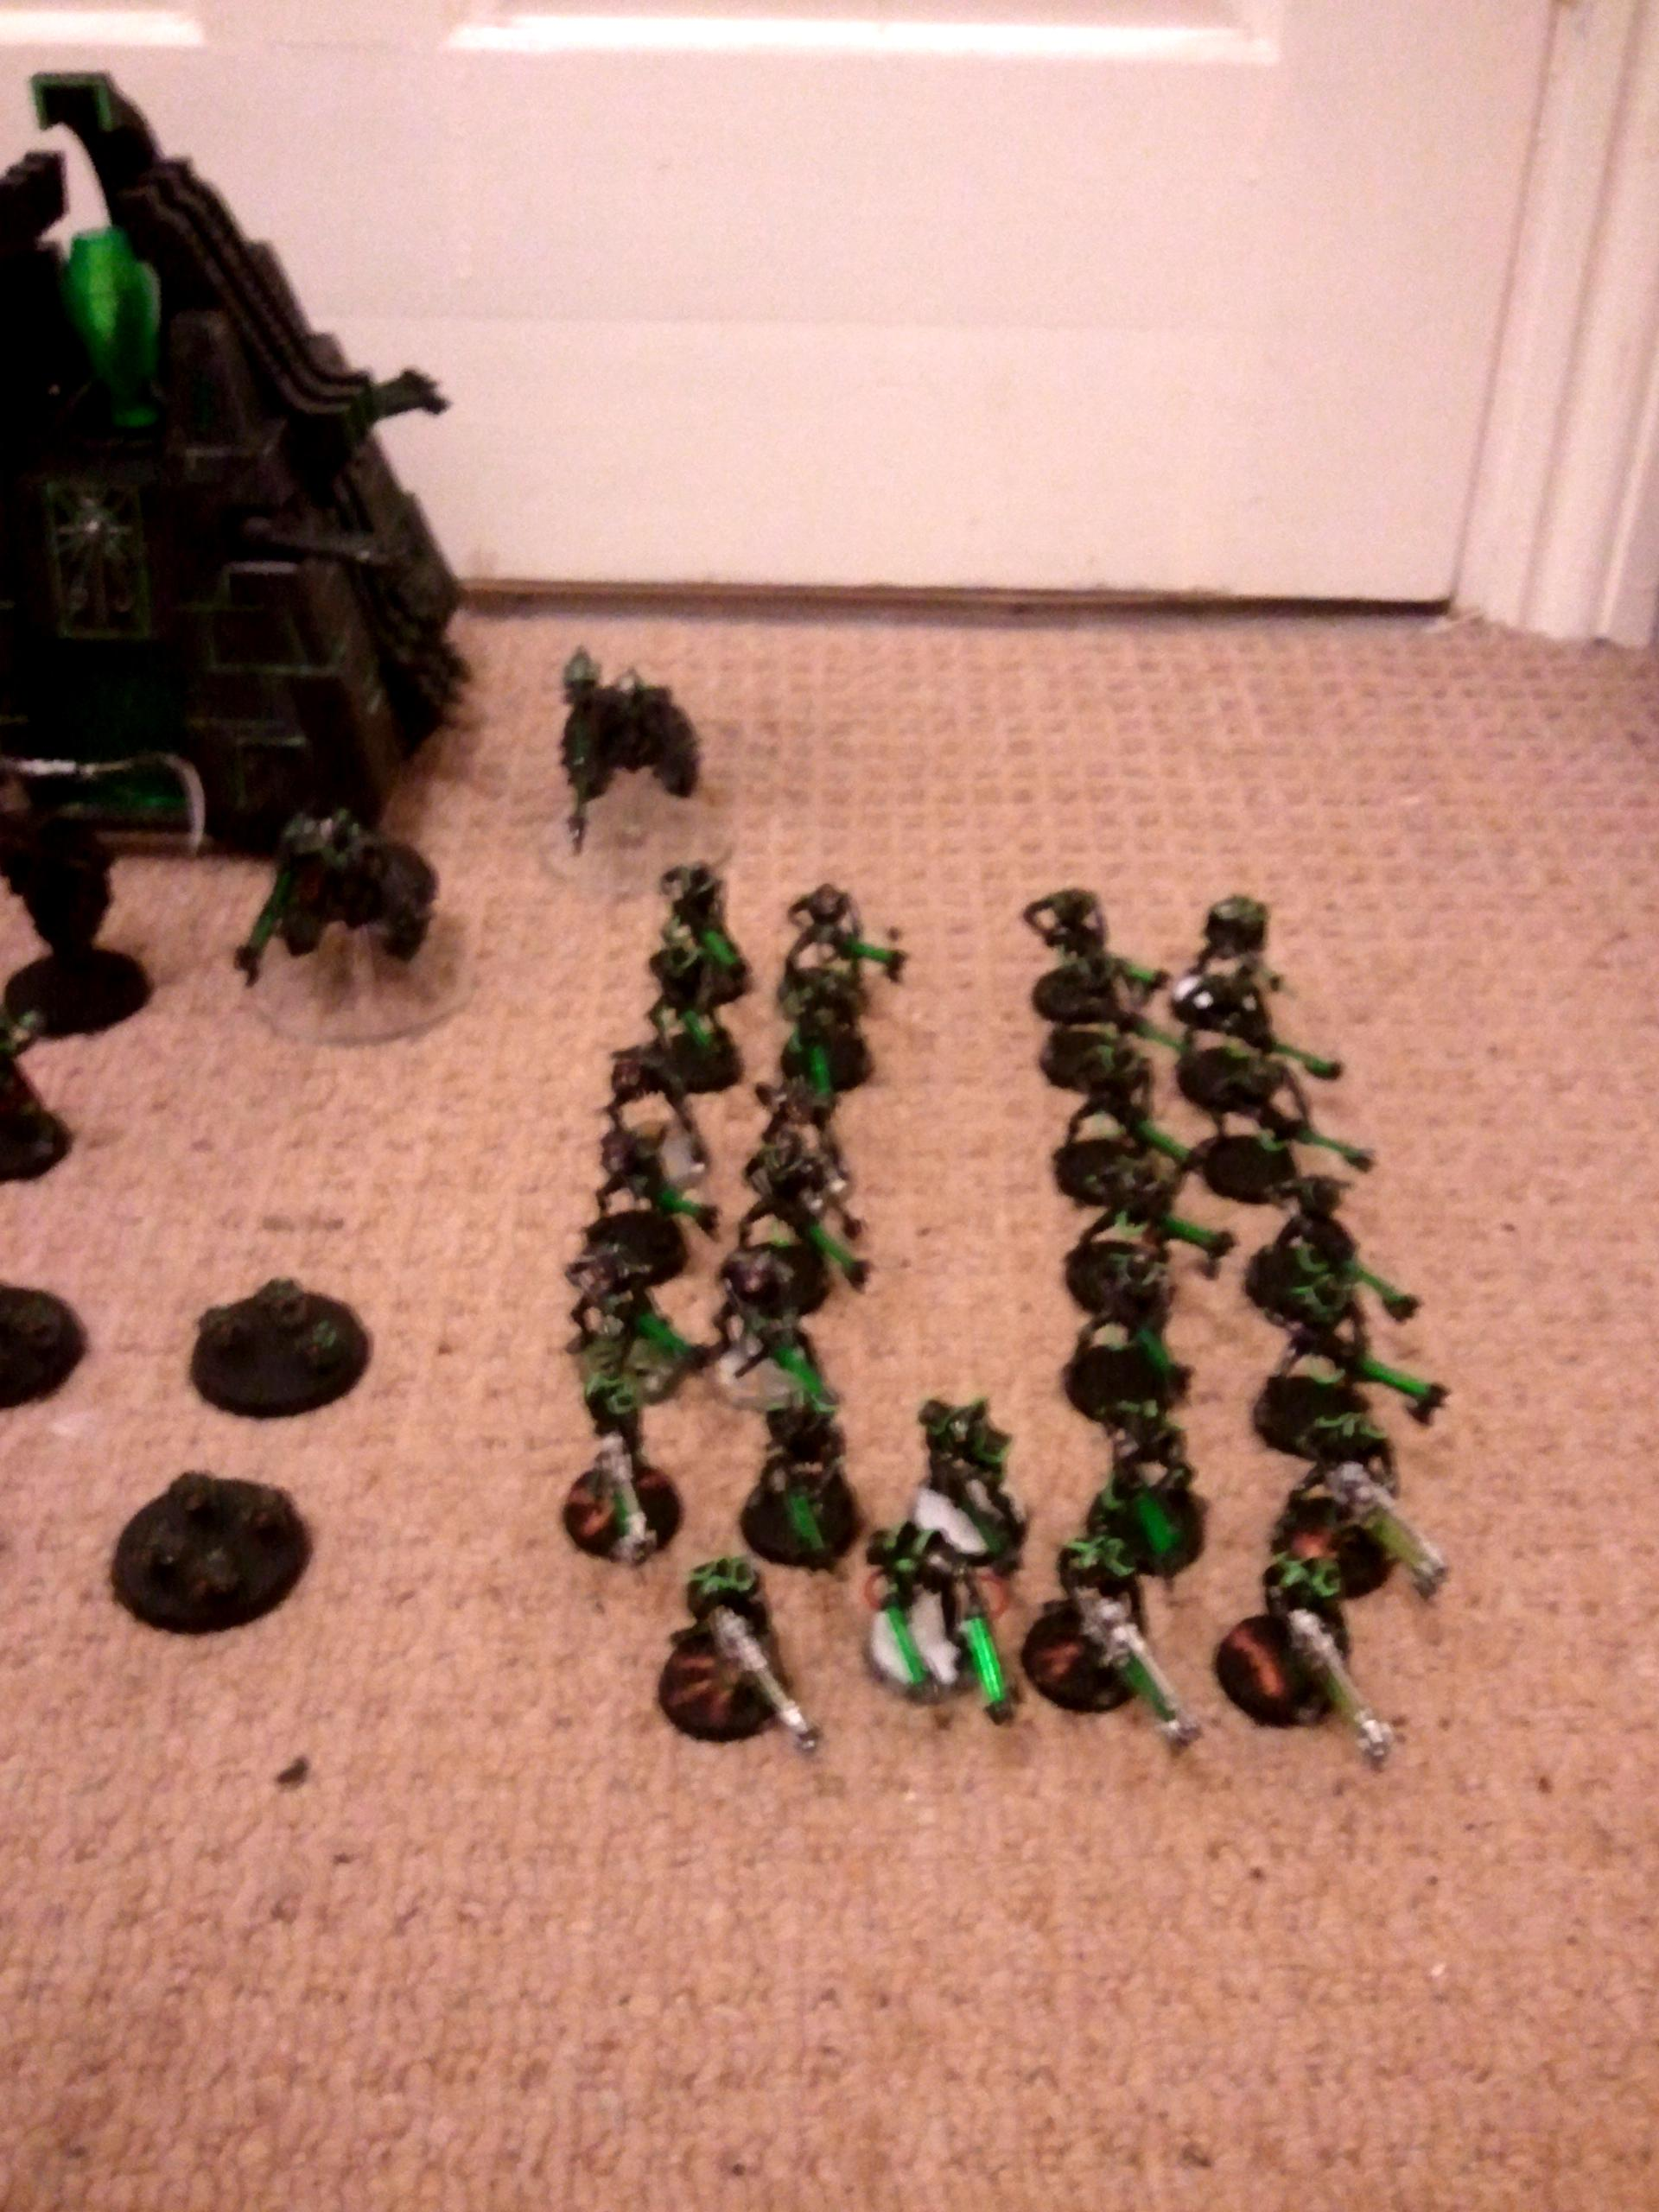 Necrons, right flank